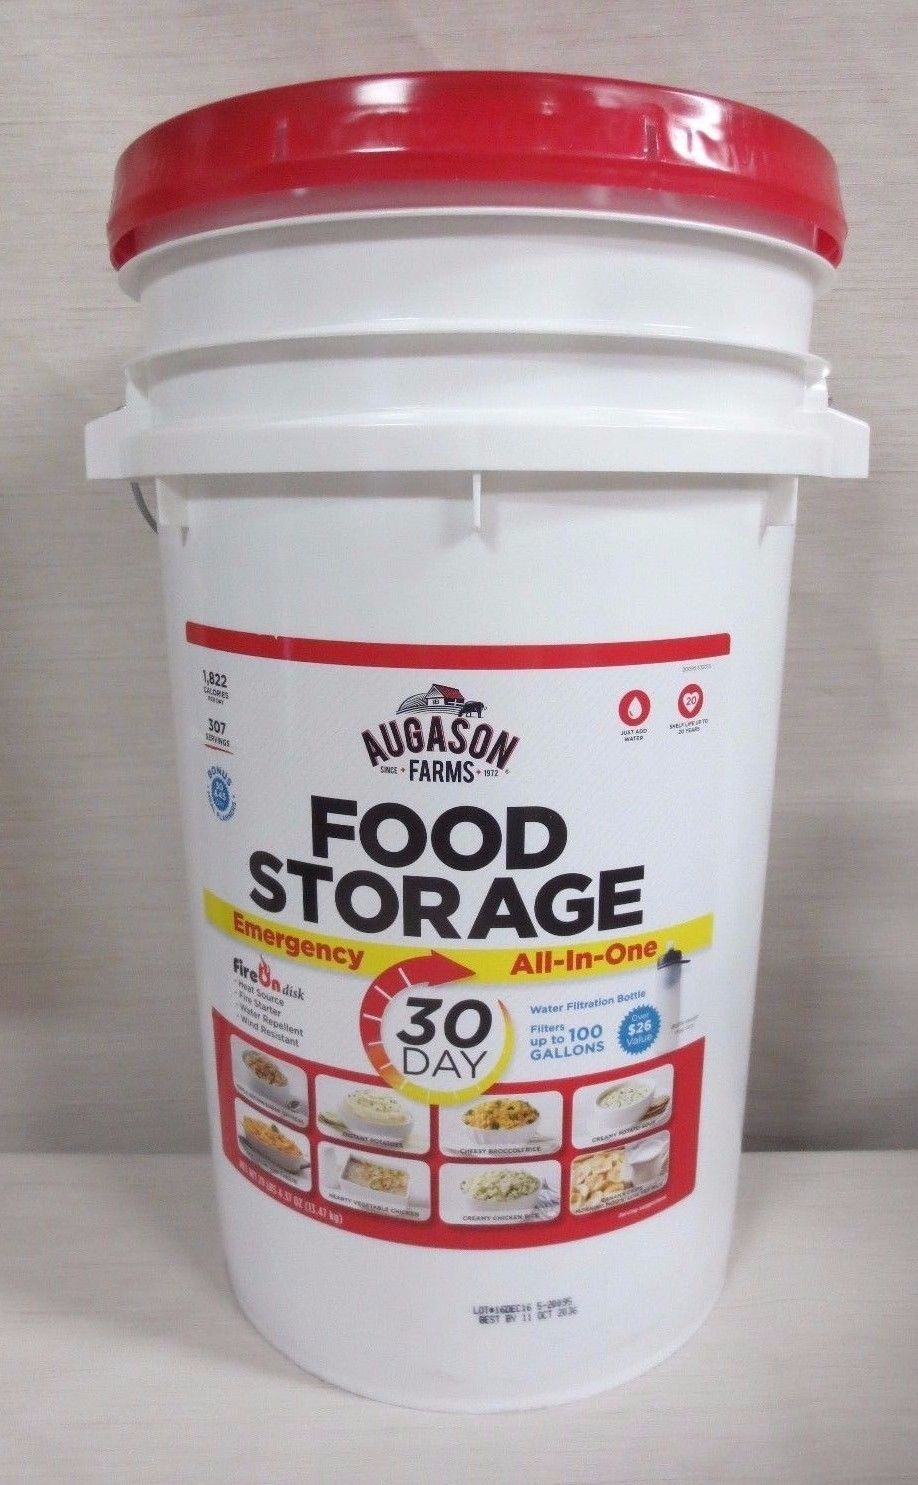 Augason Farms 30 Day All-in-One Emergency Food Storage Pail - EXP 2036 1